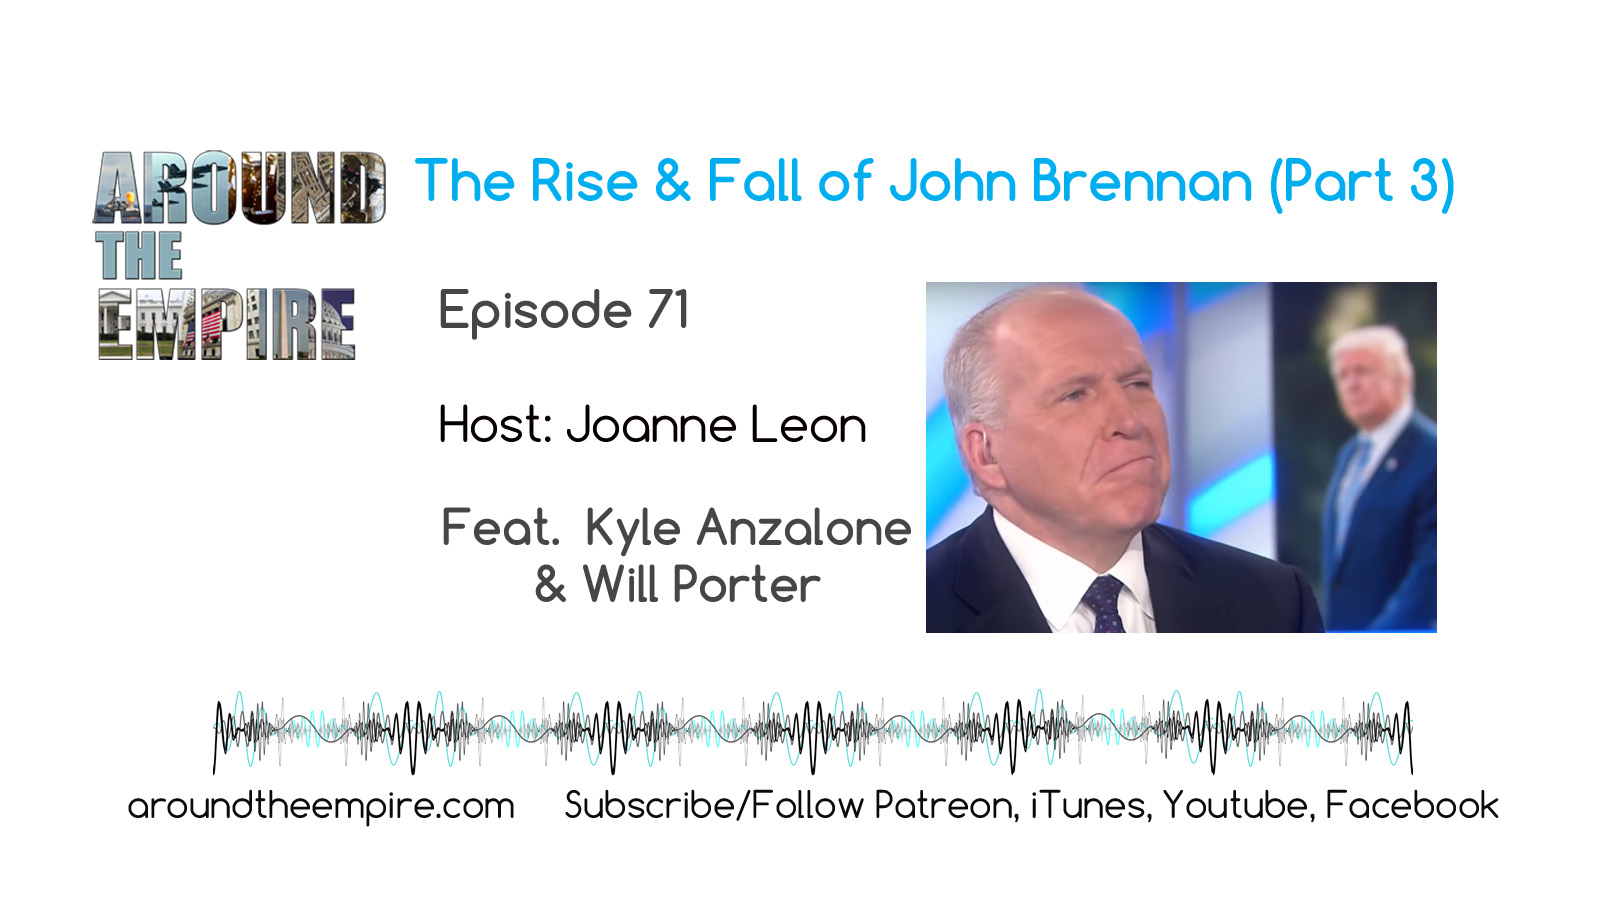 Ep 71 The Rise and Fall of John Brennan - Part 3